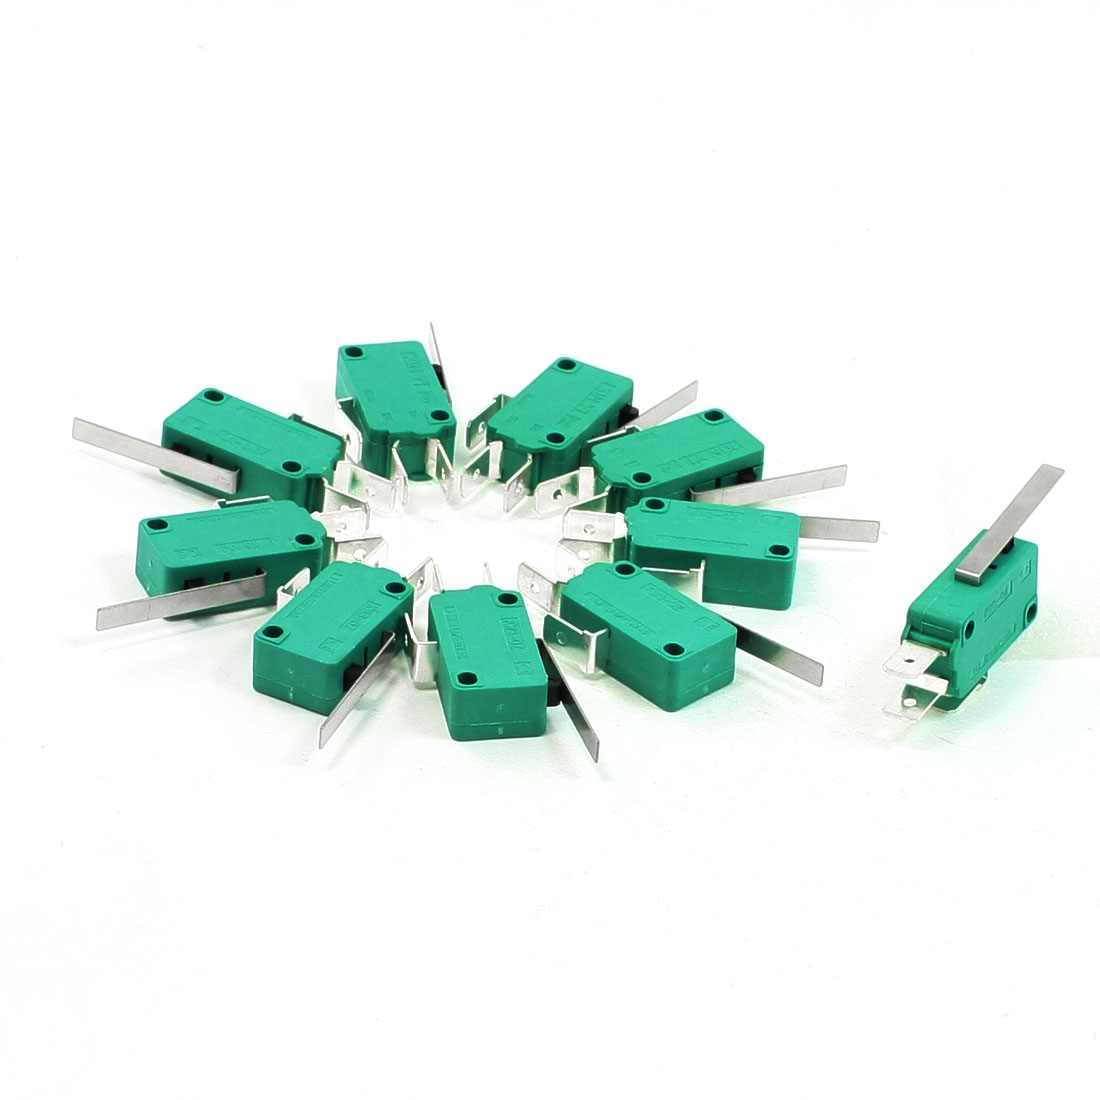 10 Pcs AC 250V 16A SPDT Short Straight Hinge Lever Mini Micro Switch Green